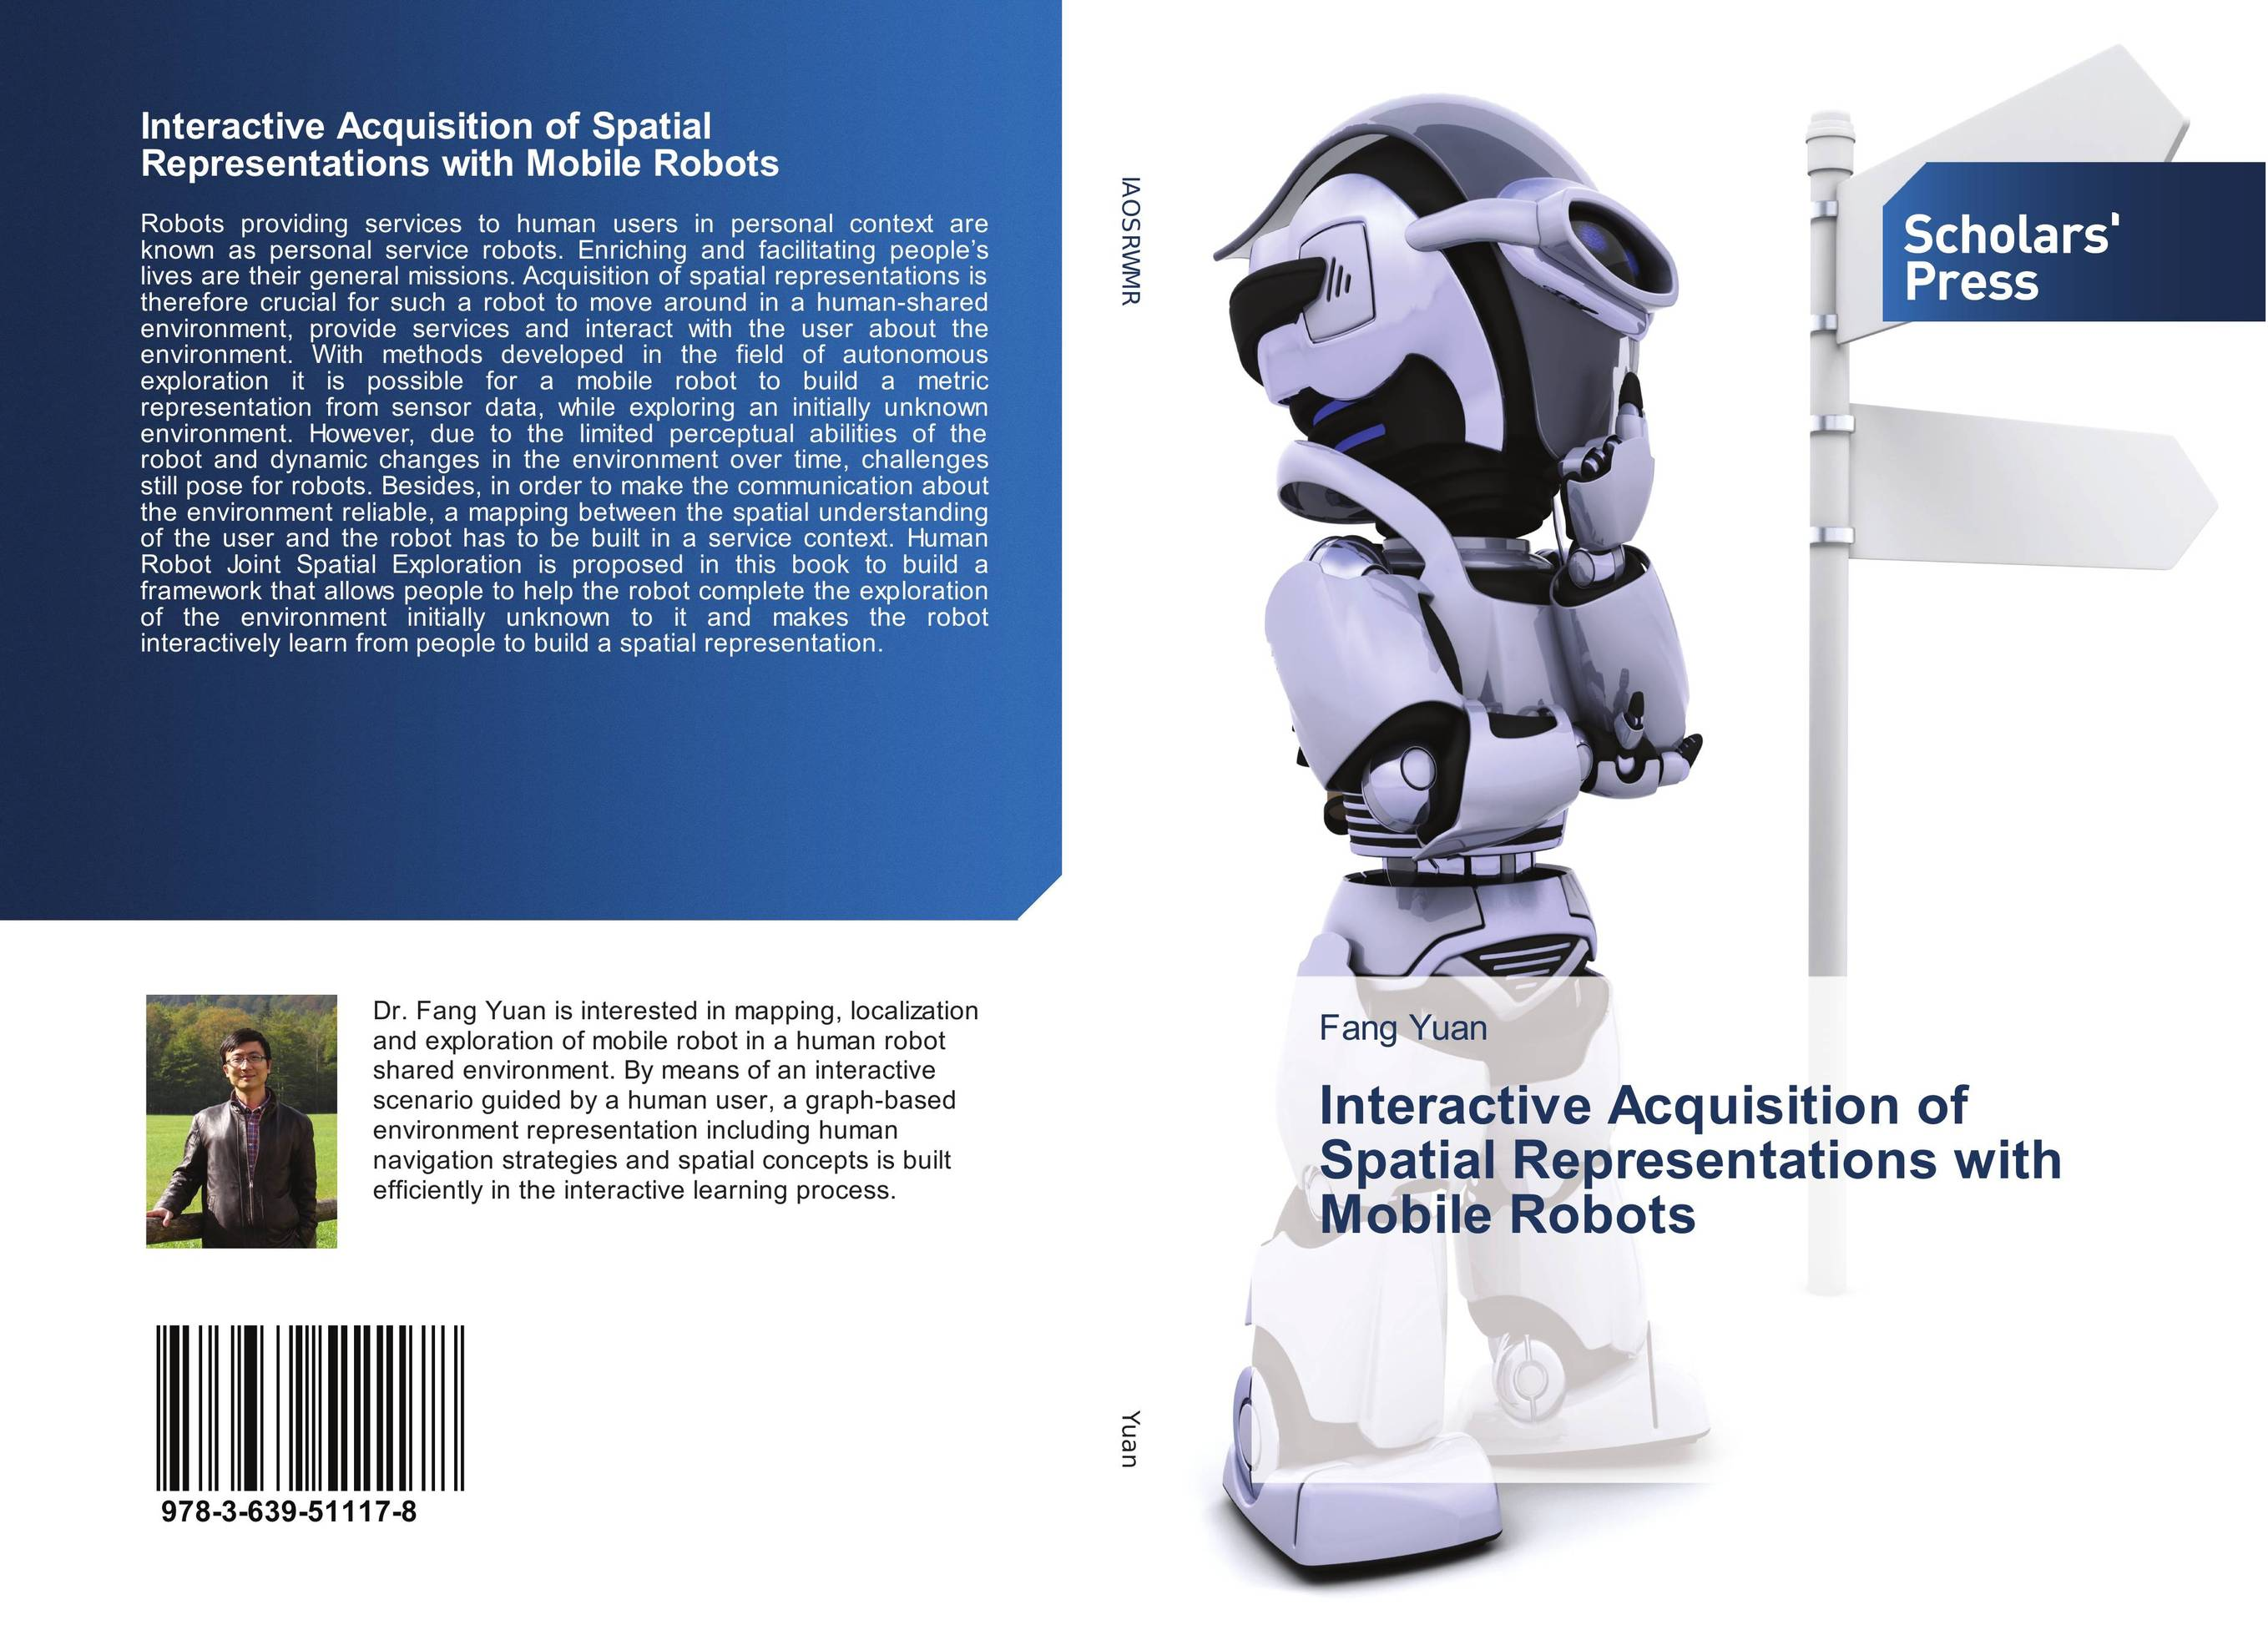 Interactive Acquisition of Spatial Representations with Mobile Robots? specifications and verifications of transactions in mobile environment